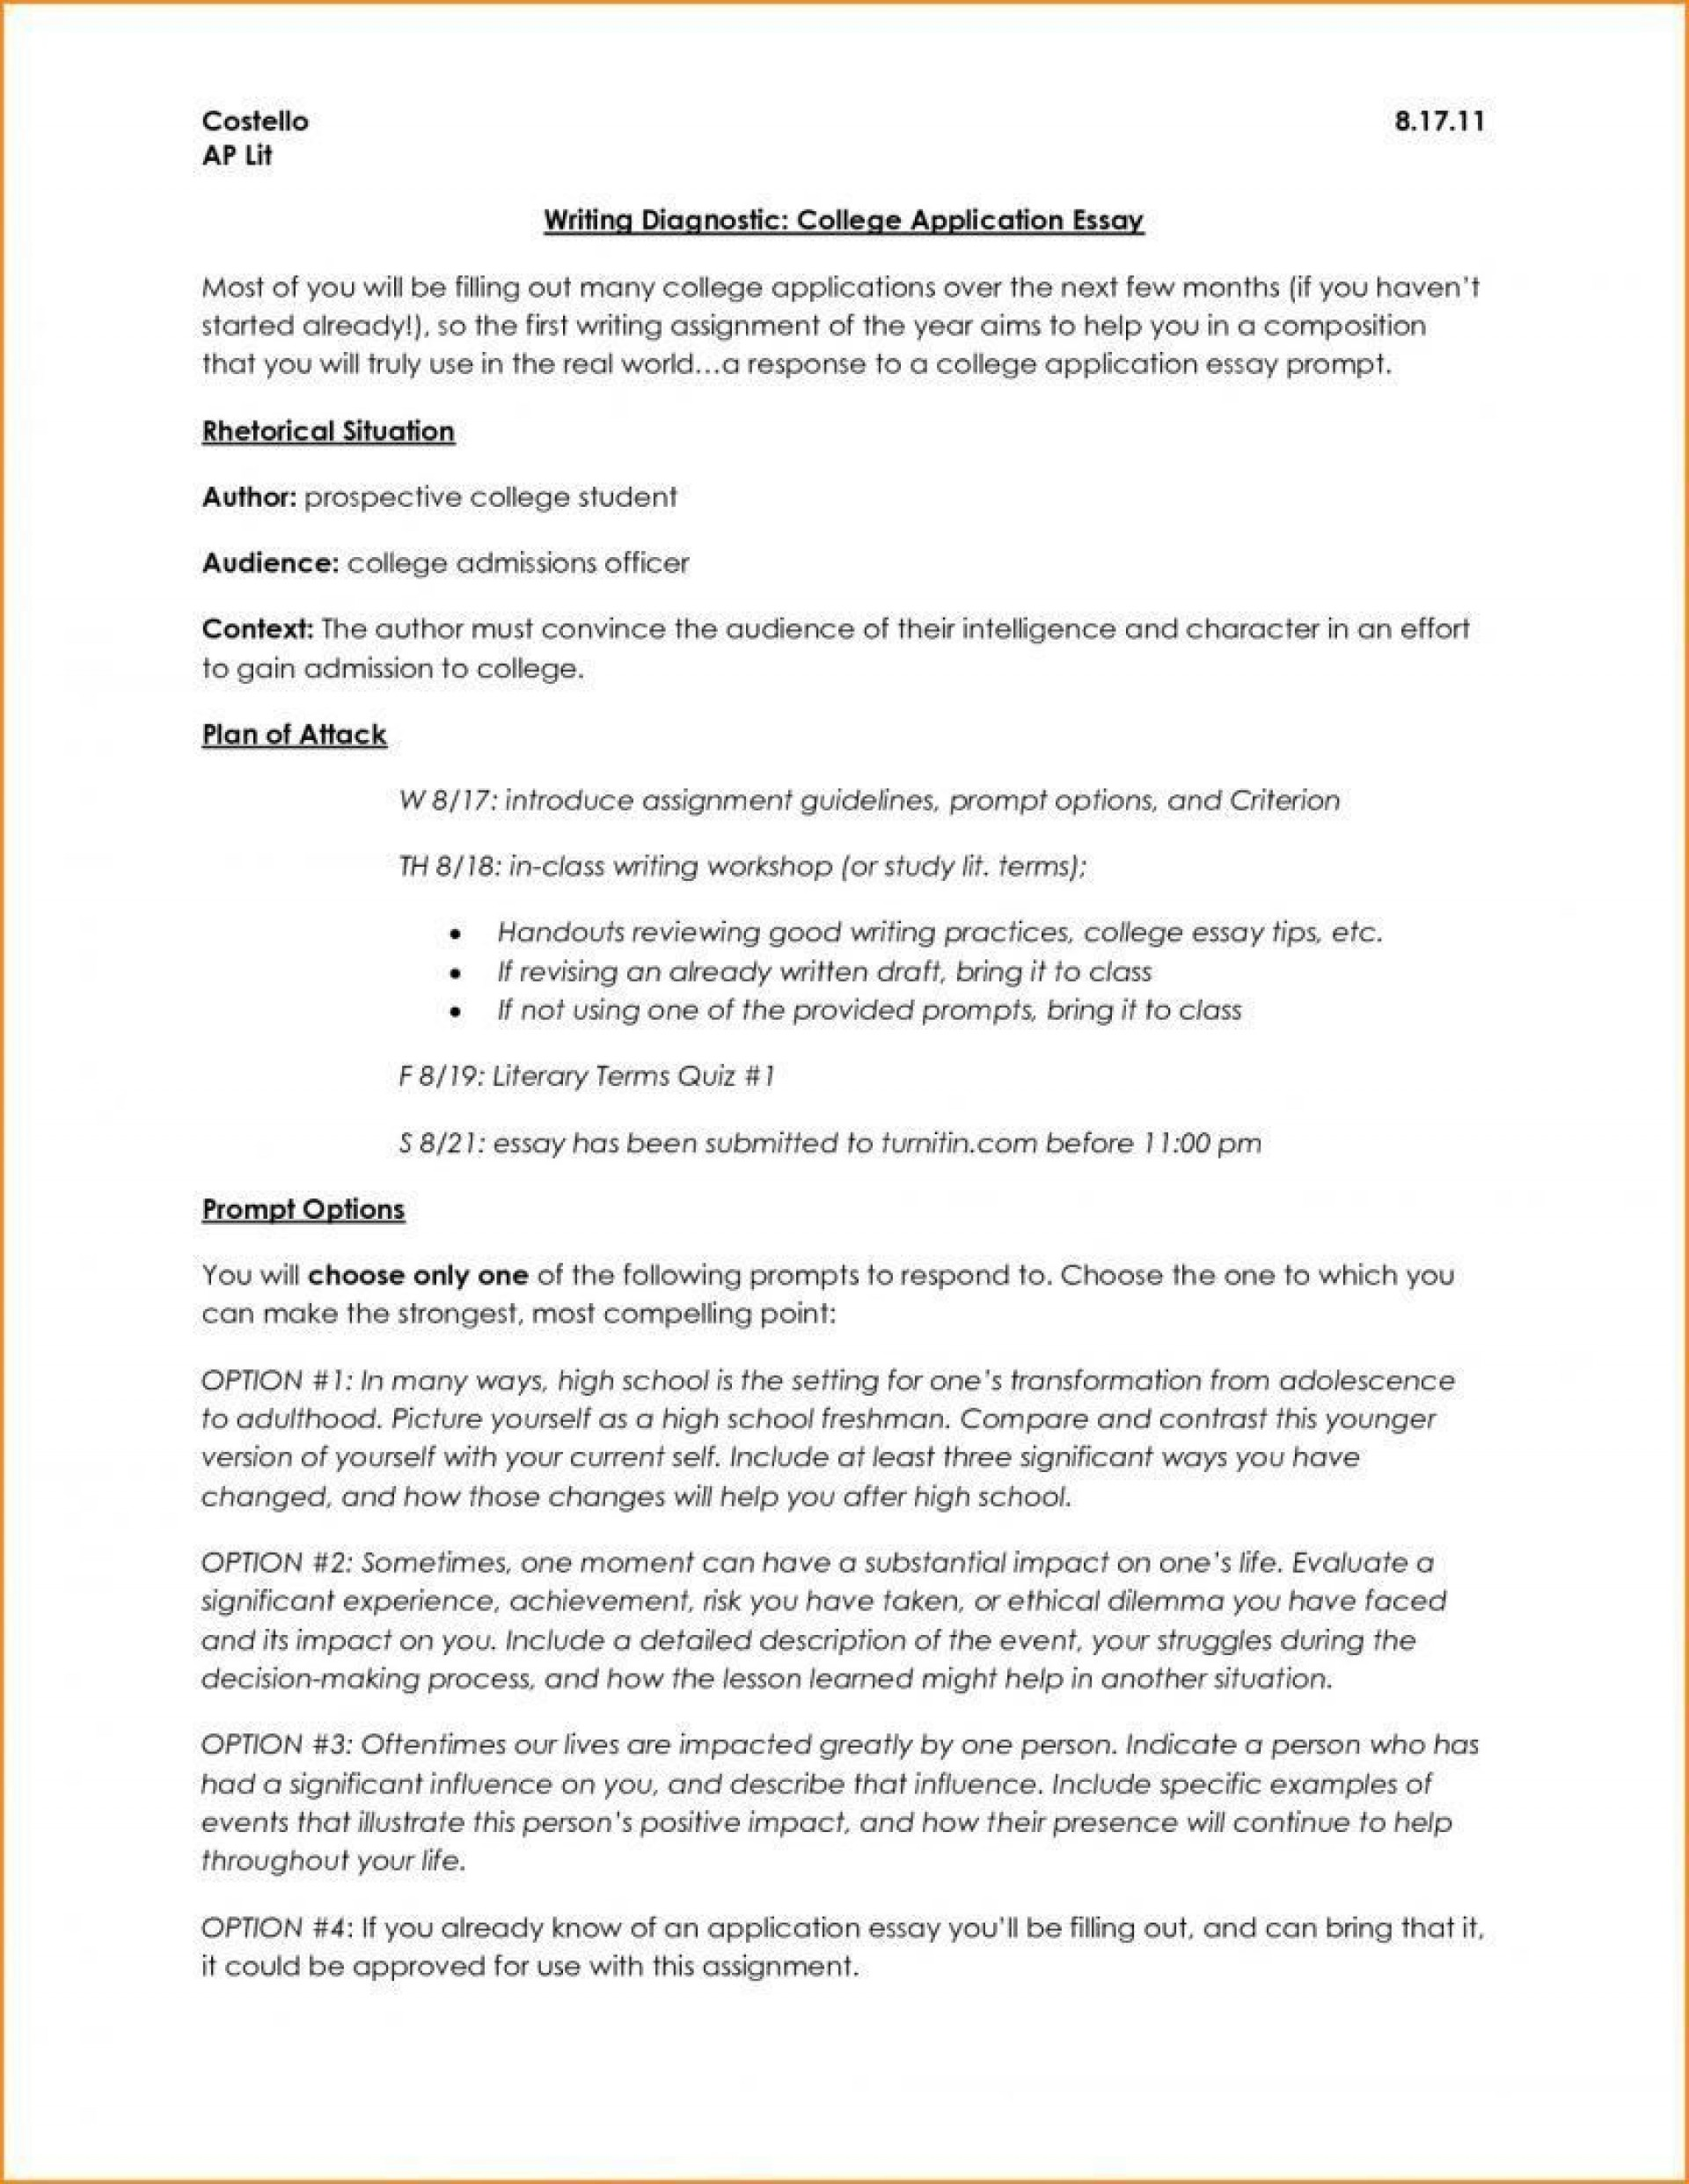 006 Surprising College Application Essay Outline Example Idea  Admission Format Heading Narrative Template1920